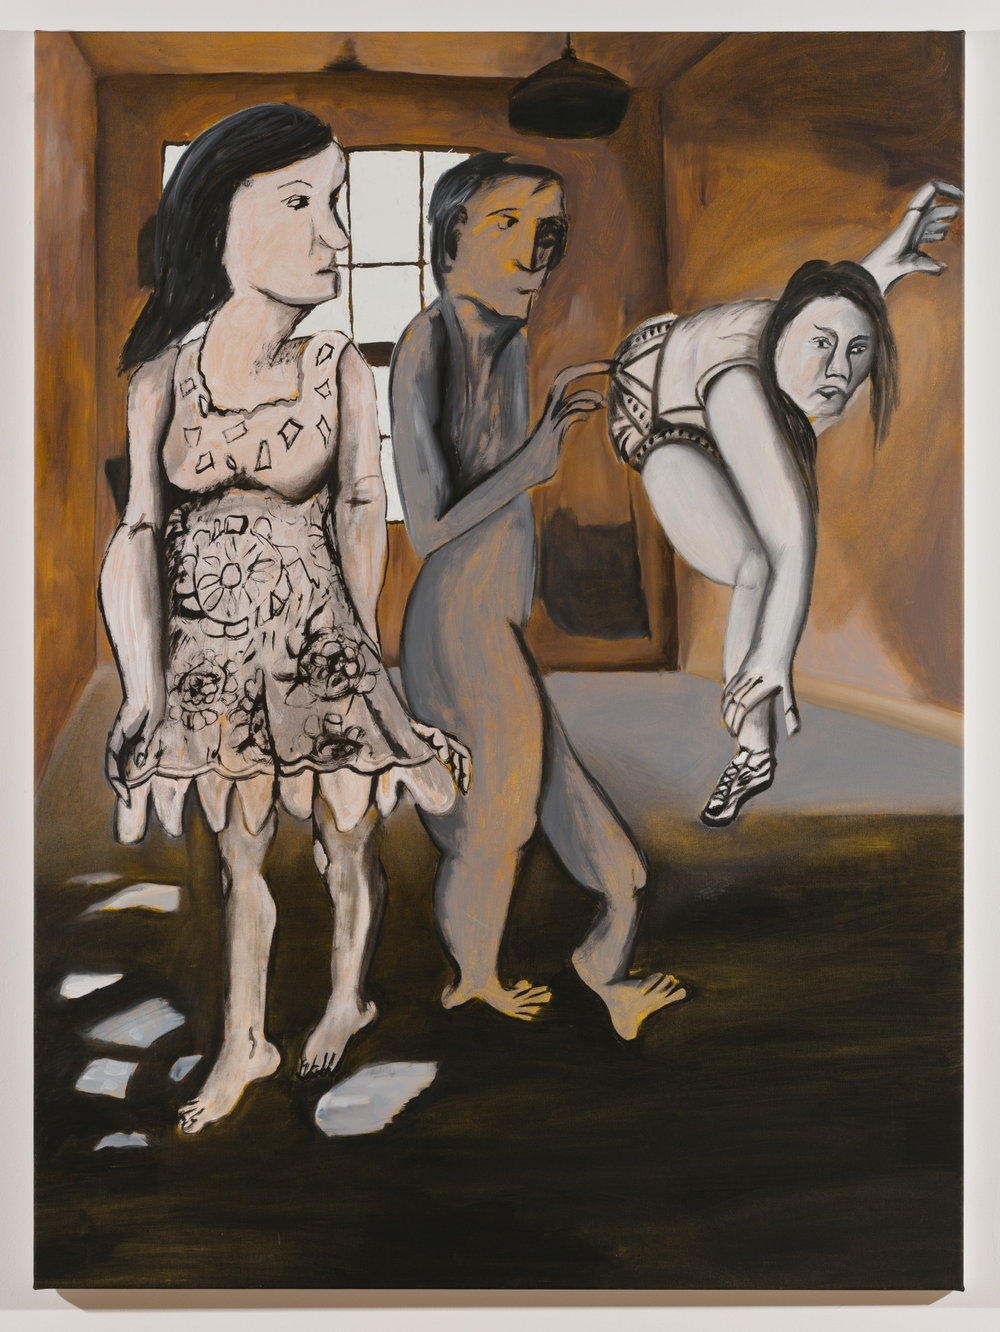 Sofi Brazzeal,  Untitled (3 figures, one in lace dress),  2016, oil and acrylic on canvas, 48 x 35.5 in.